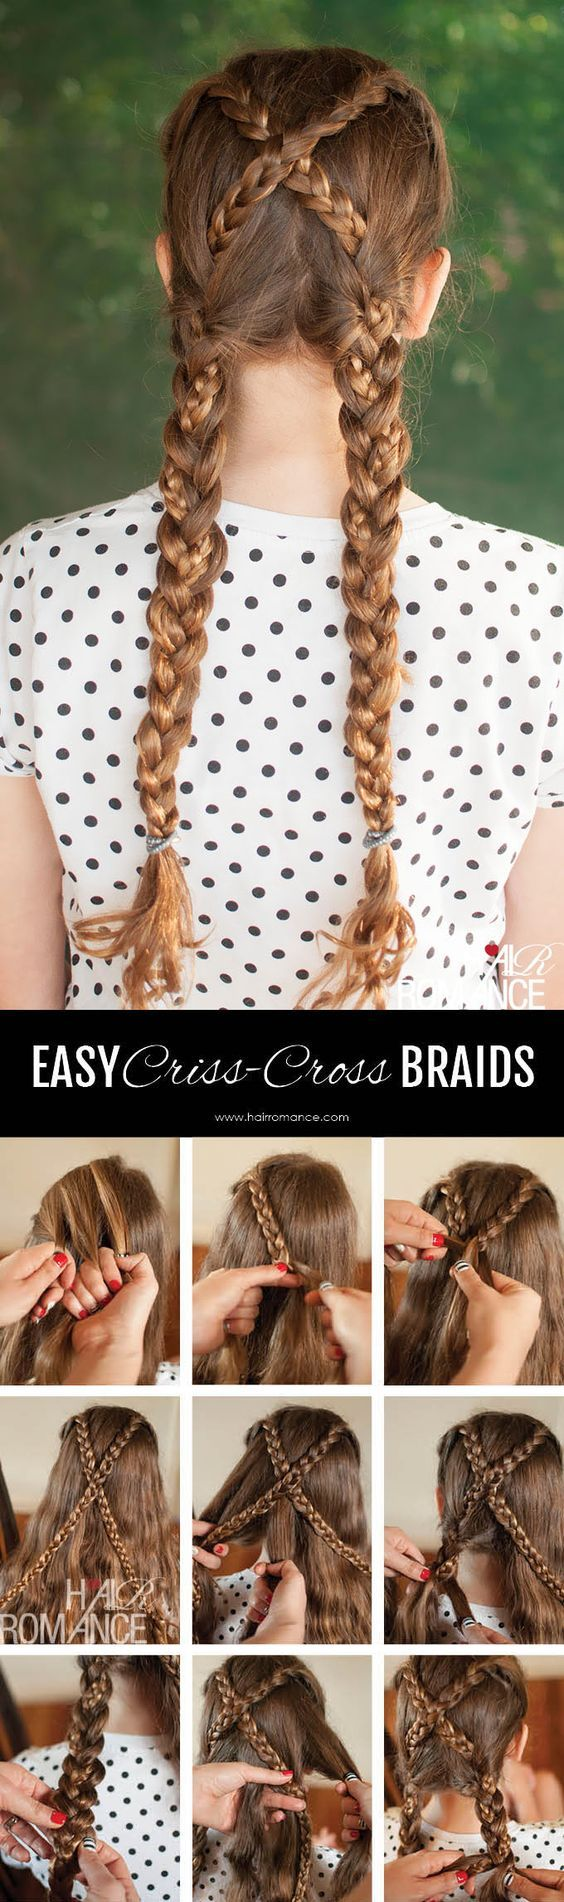 pigtail hairstyles you will actually want to copy school hair